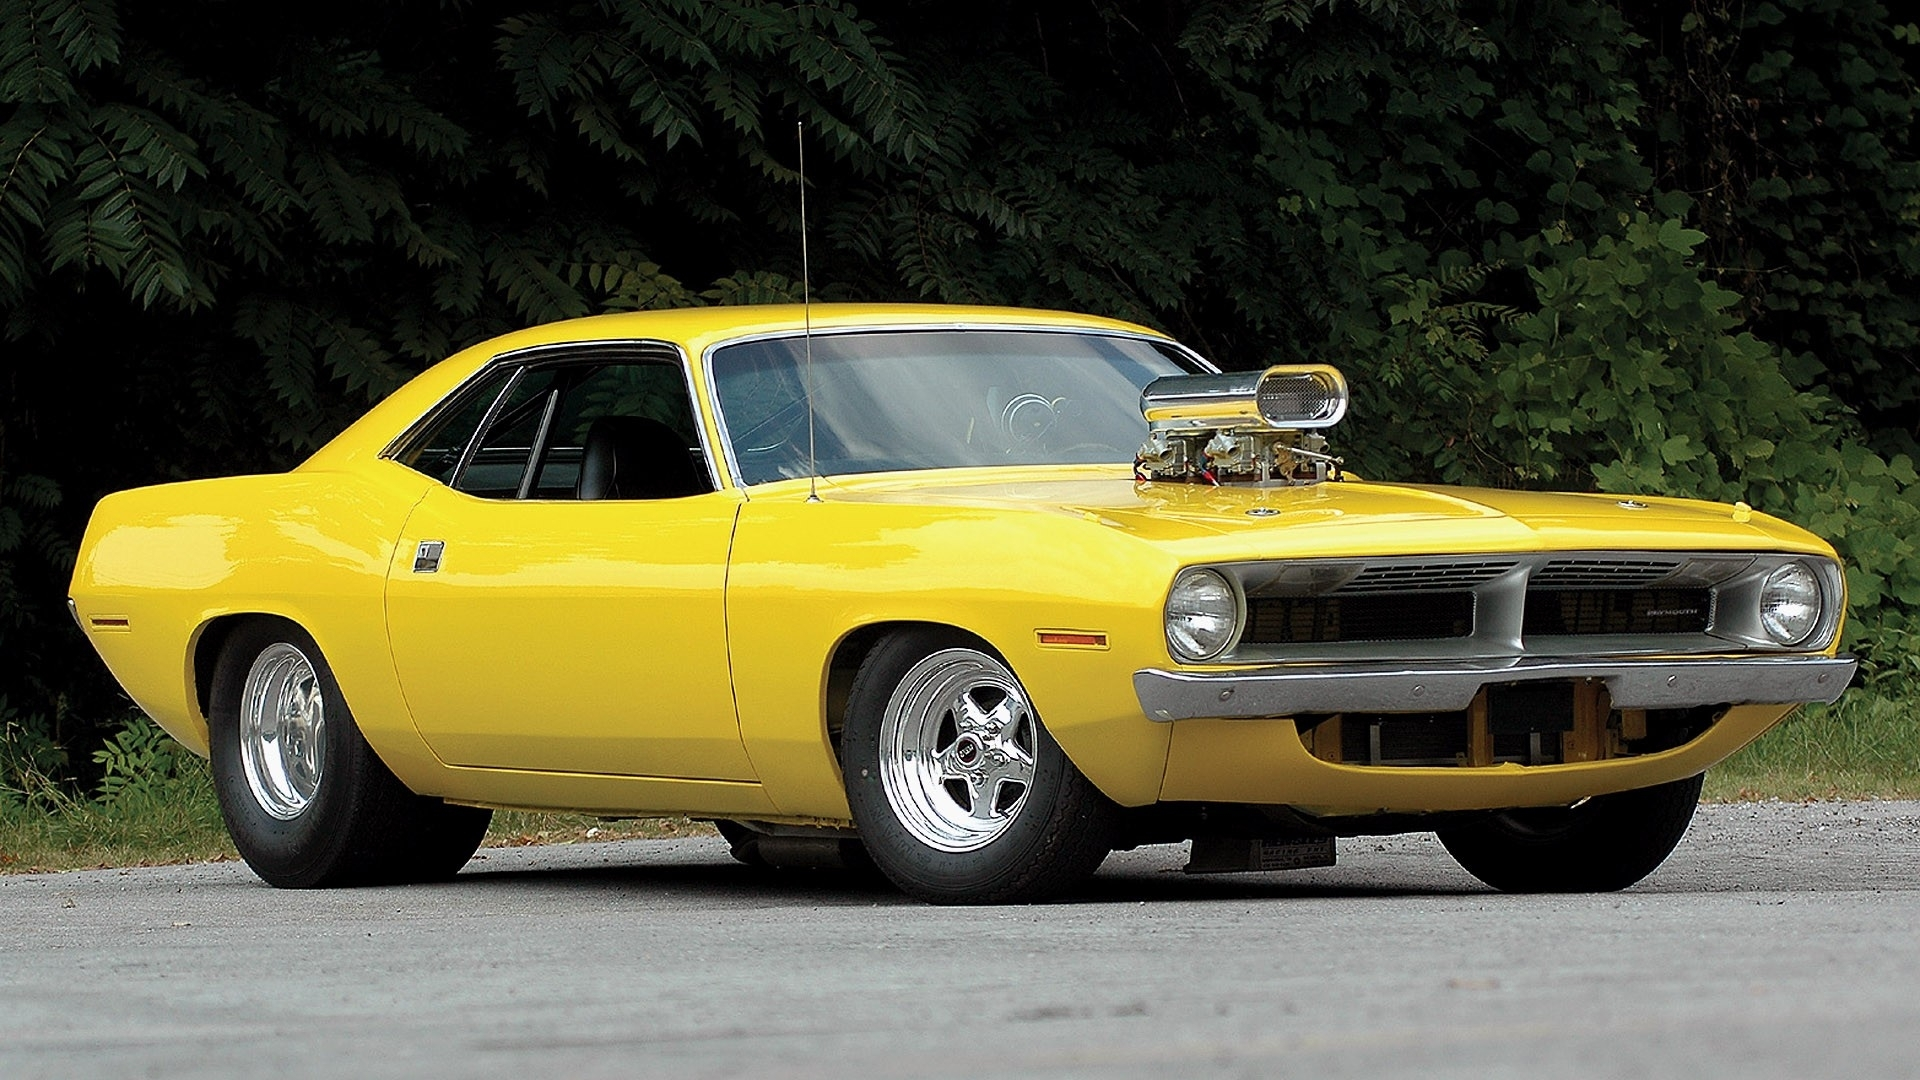 Plymouth barracuda hot rod tuning yellow classic muscle ...